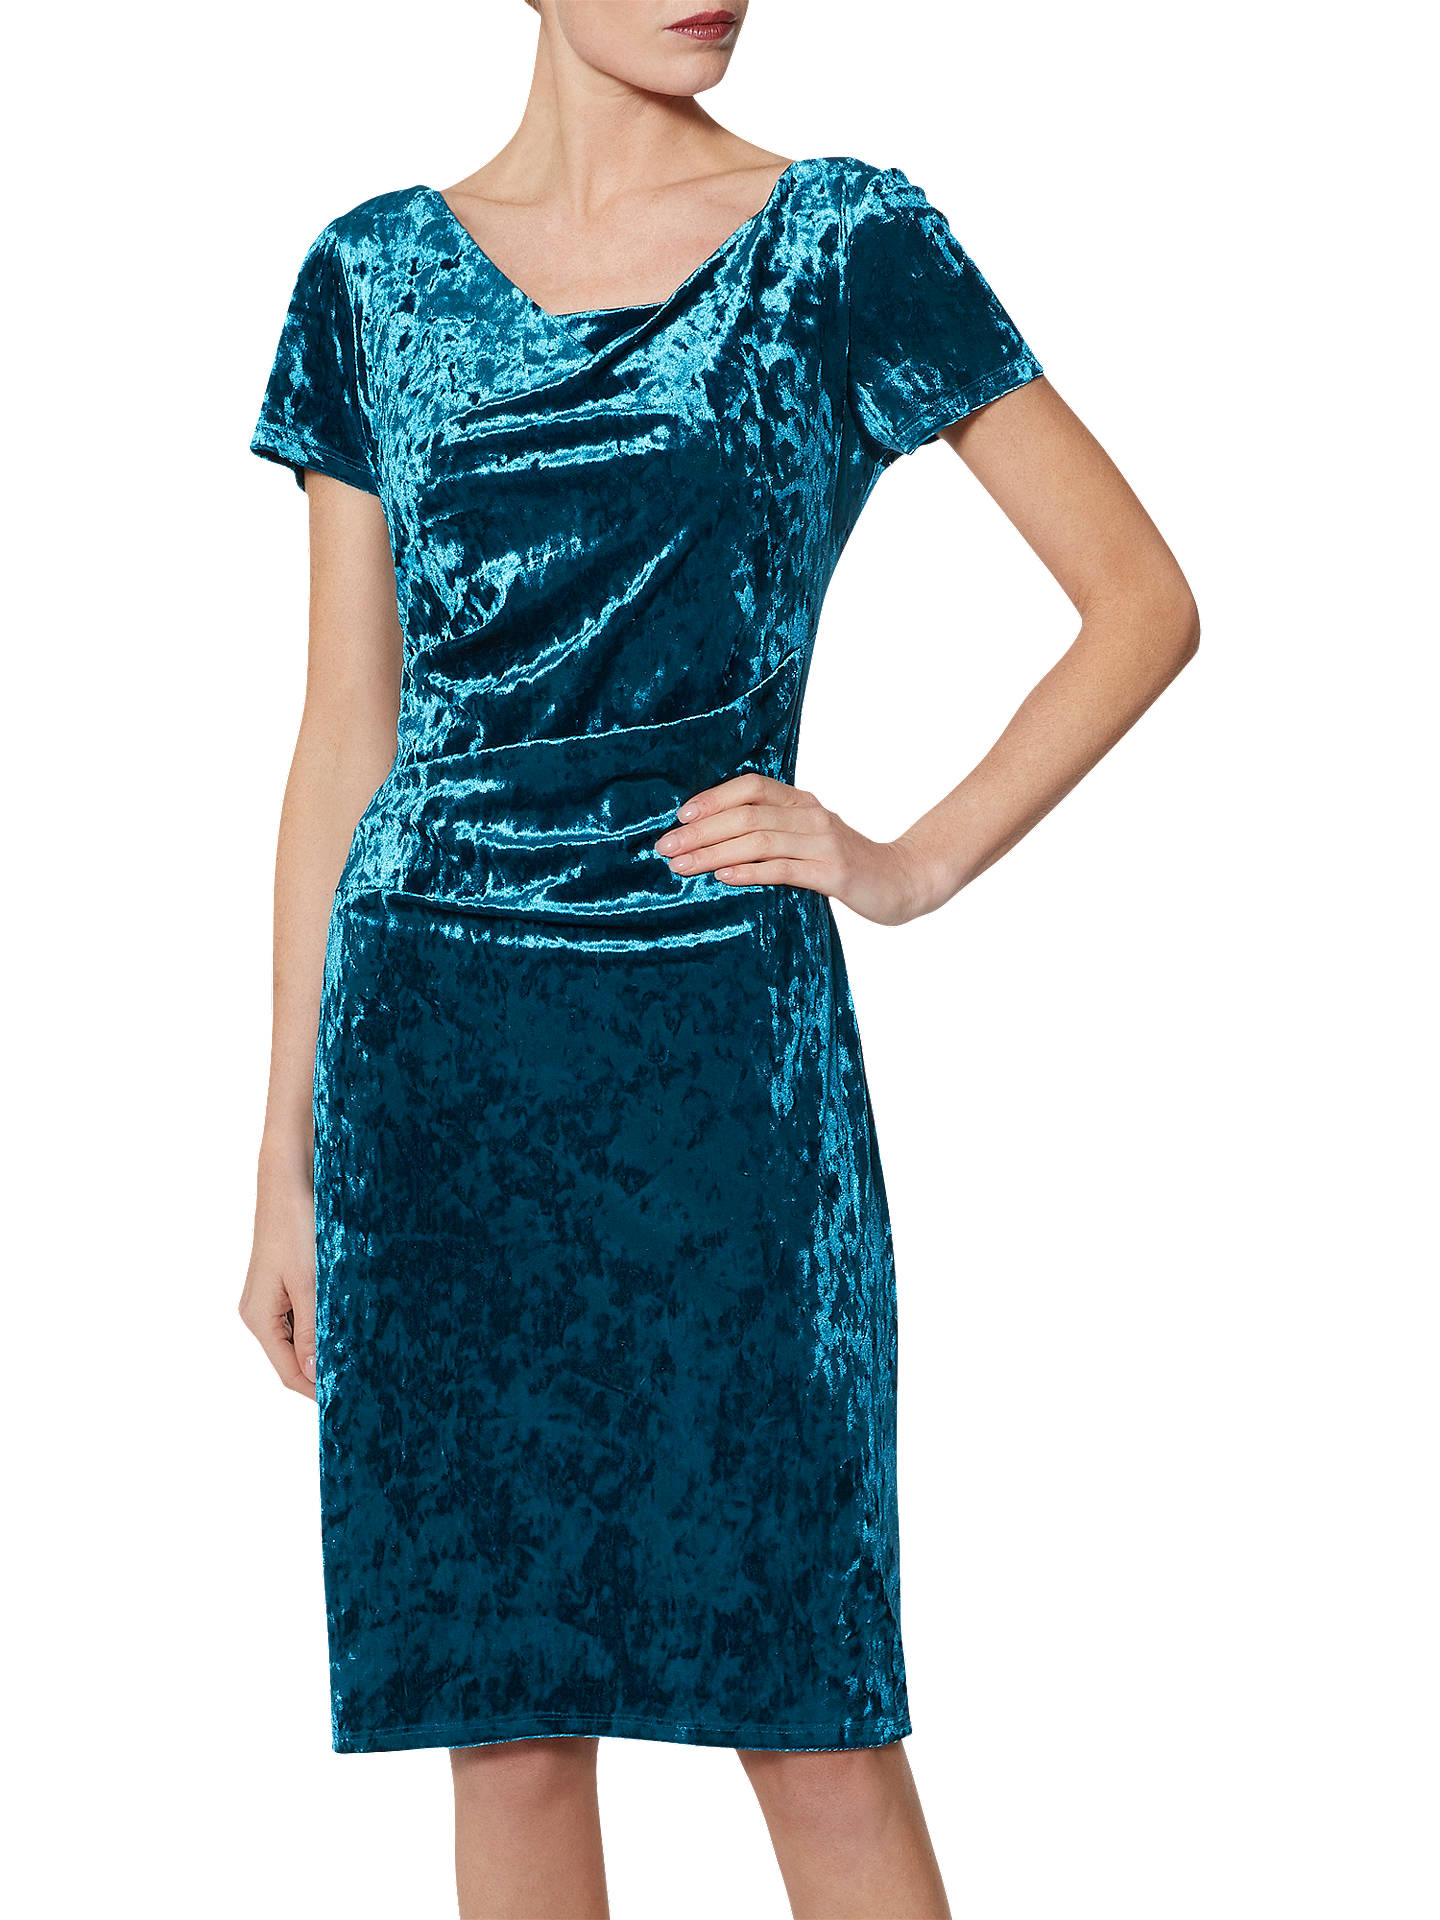 BuyGina Bacconi Sigrid Velvet Dress, Teal, 16 Online at johnlewis.com